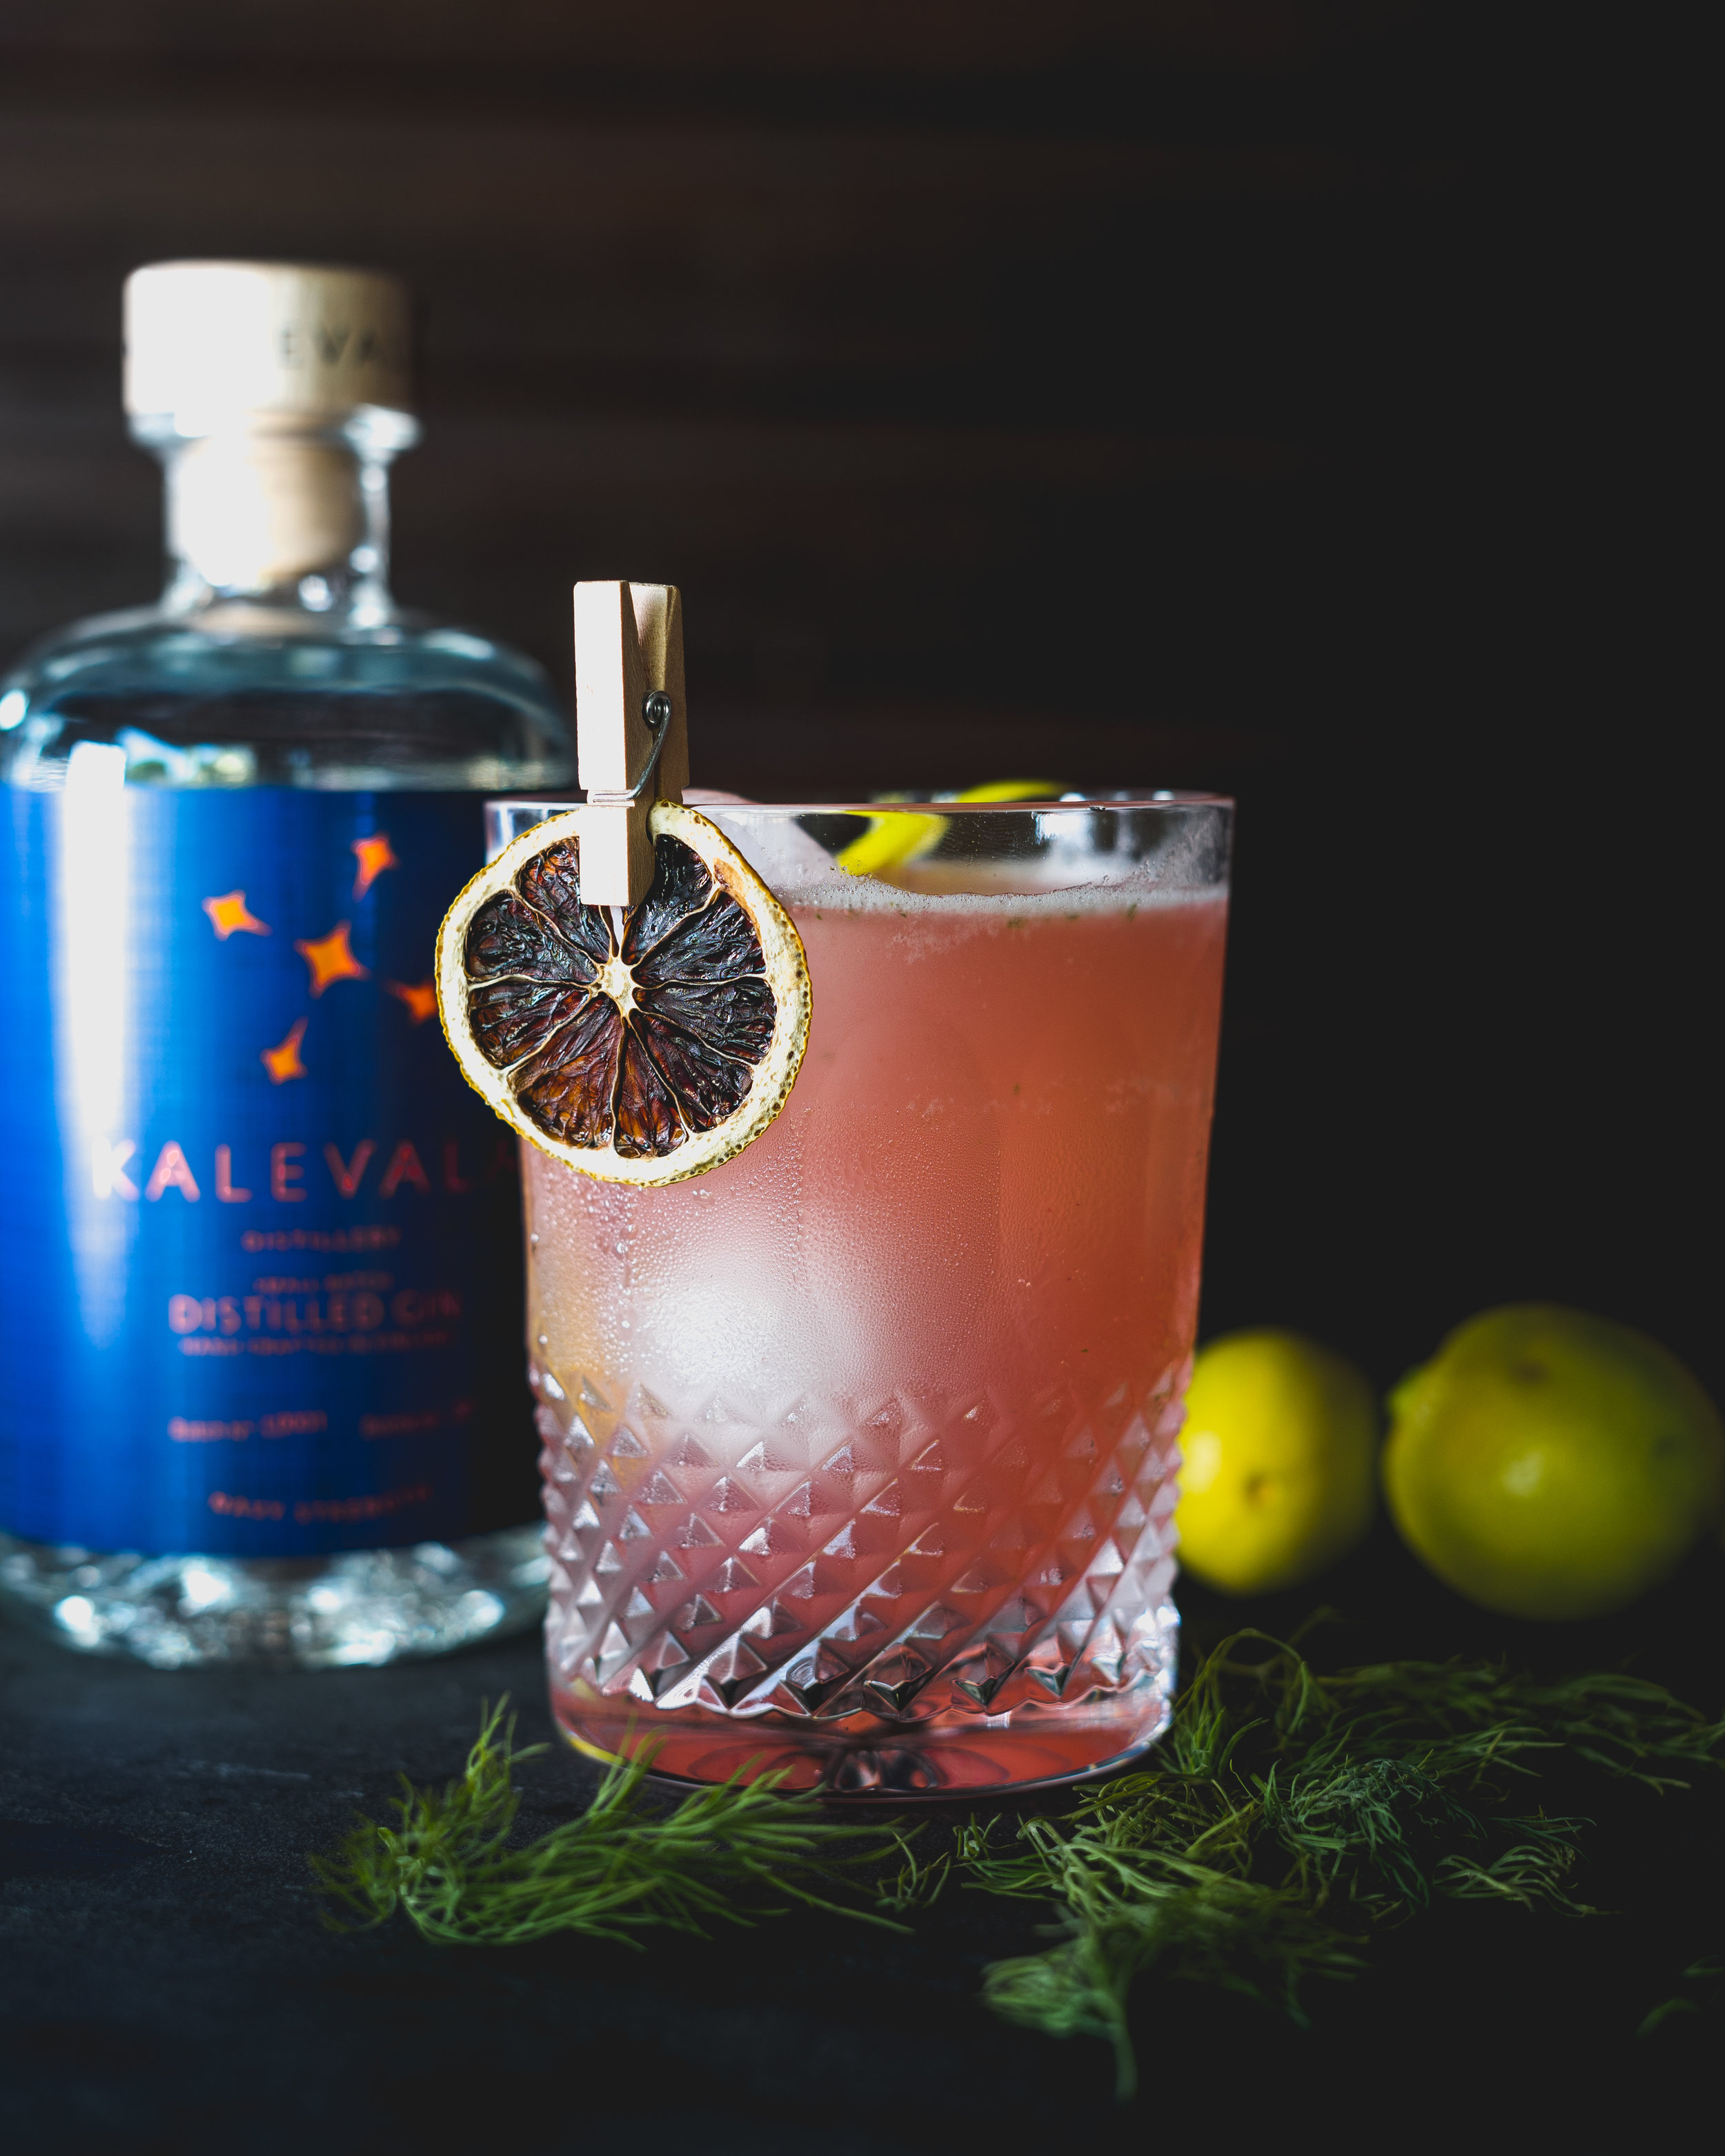 Kalevala Blue Label Signature Drink